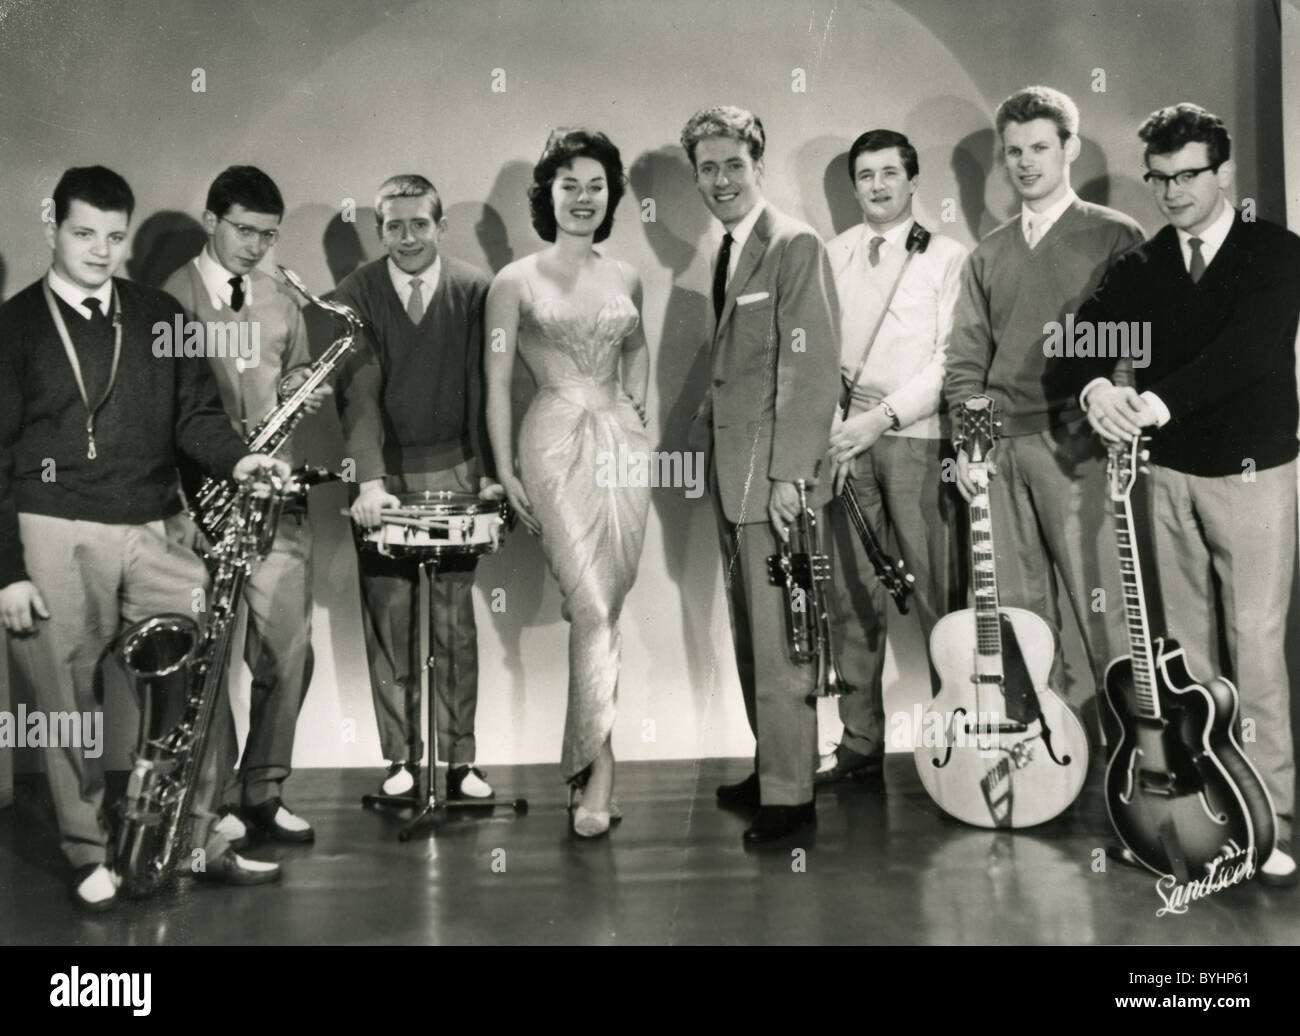 JOHN BARRY SEVEN UK music group with Barry fourth from right next to vocalist Liza Page, sister of singer Jill Day, Stock Photo